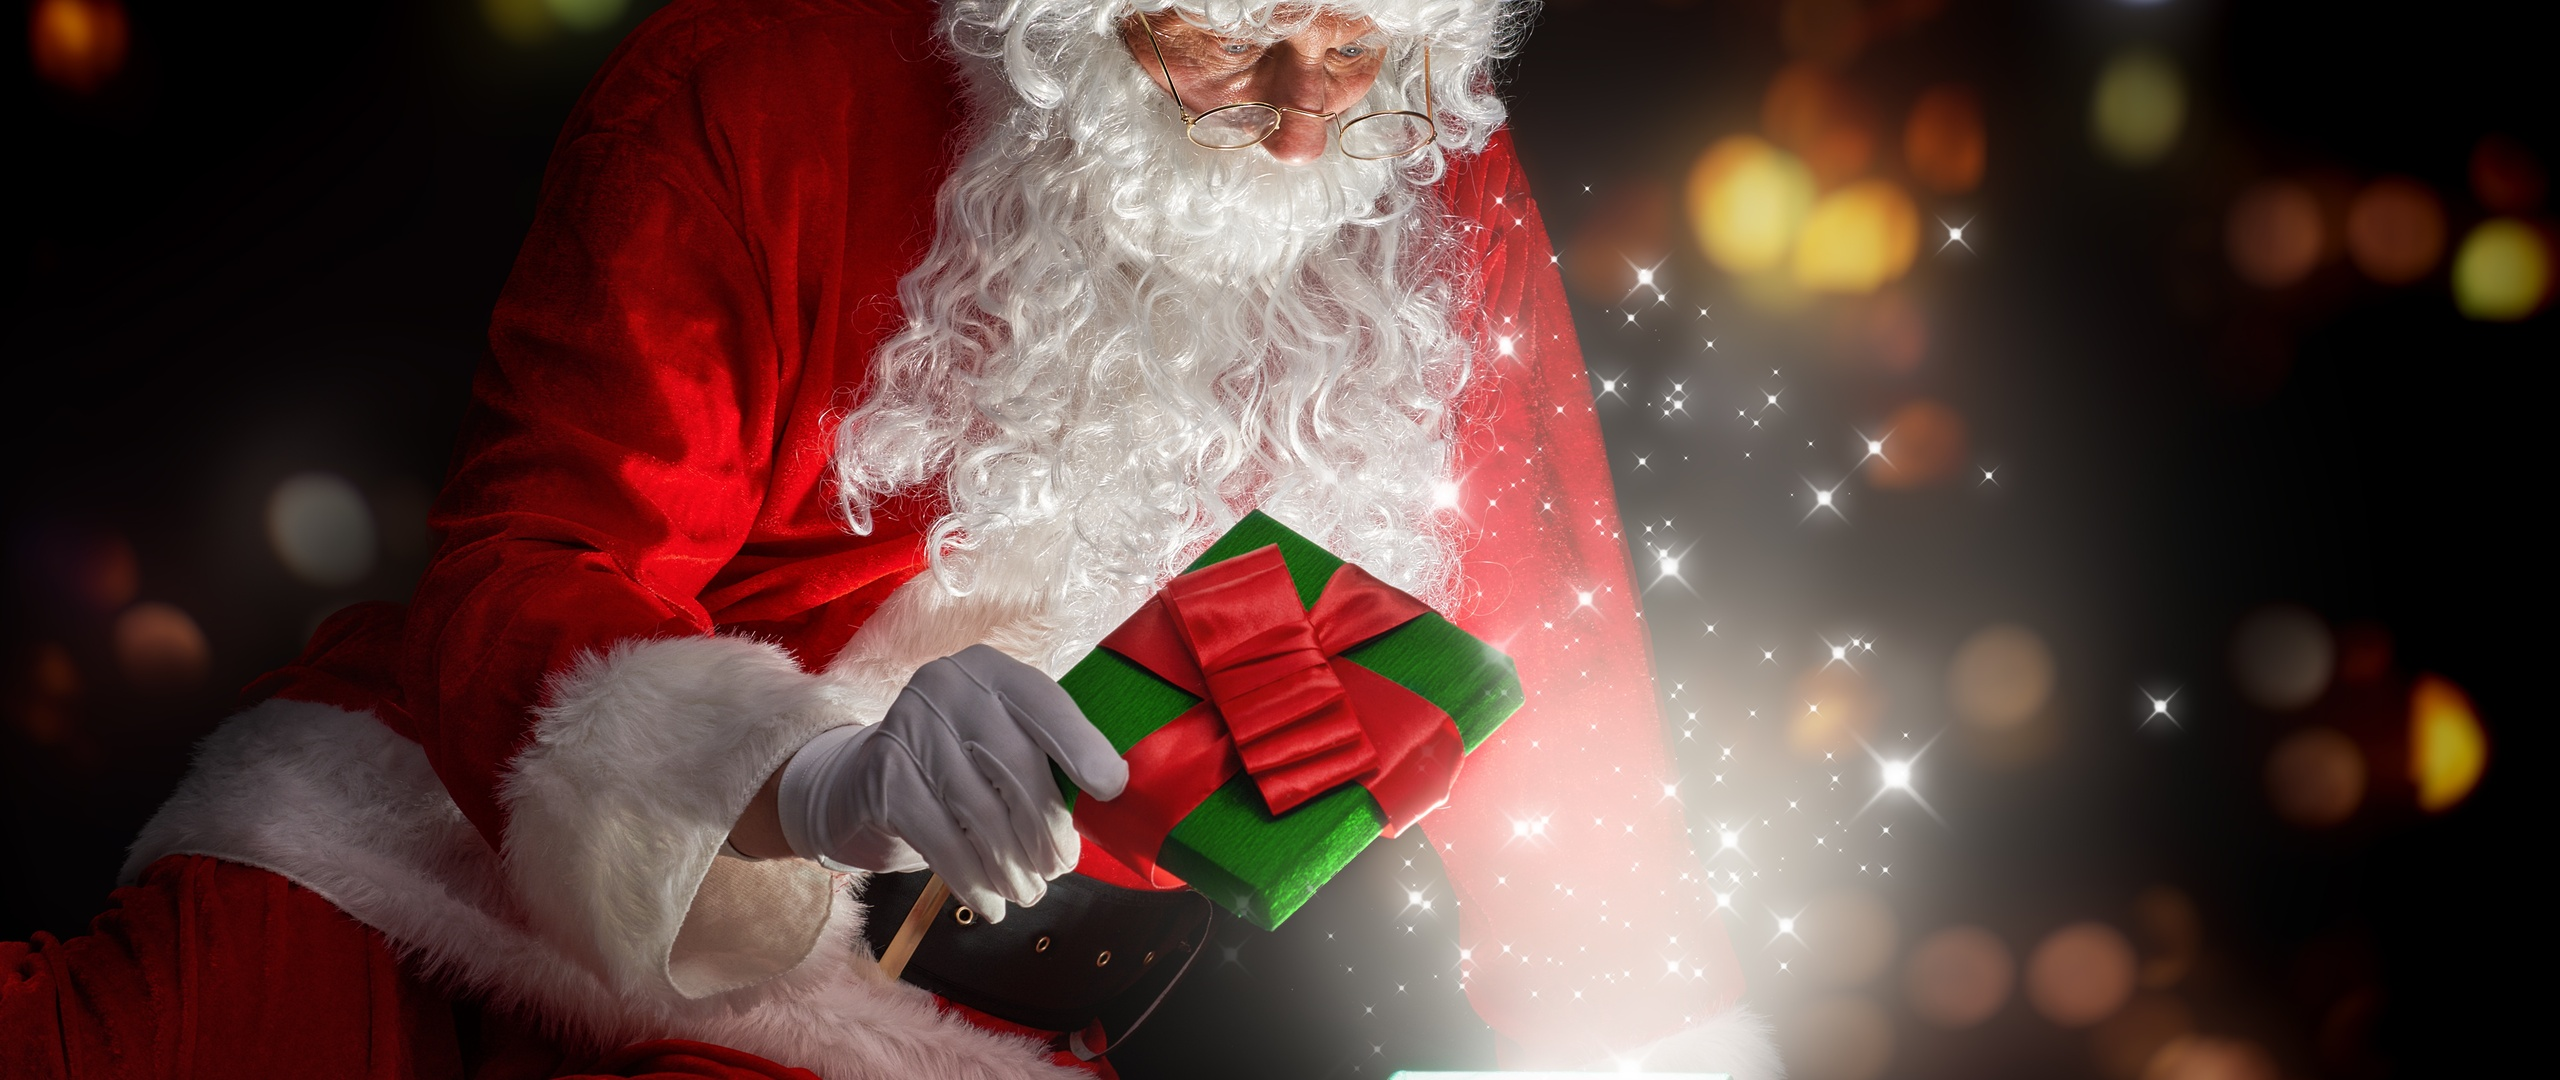 christmas-santa-claus-opening-gifts-1z.jpg